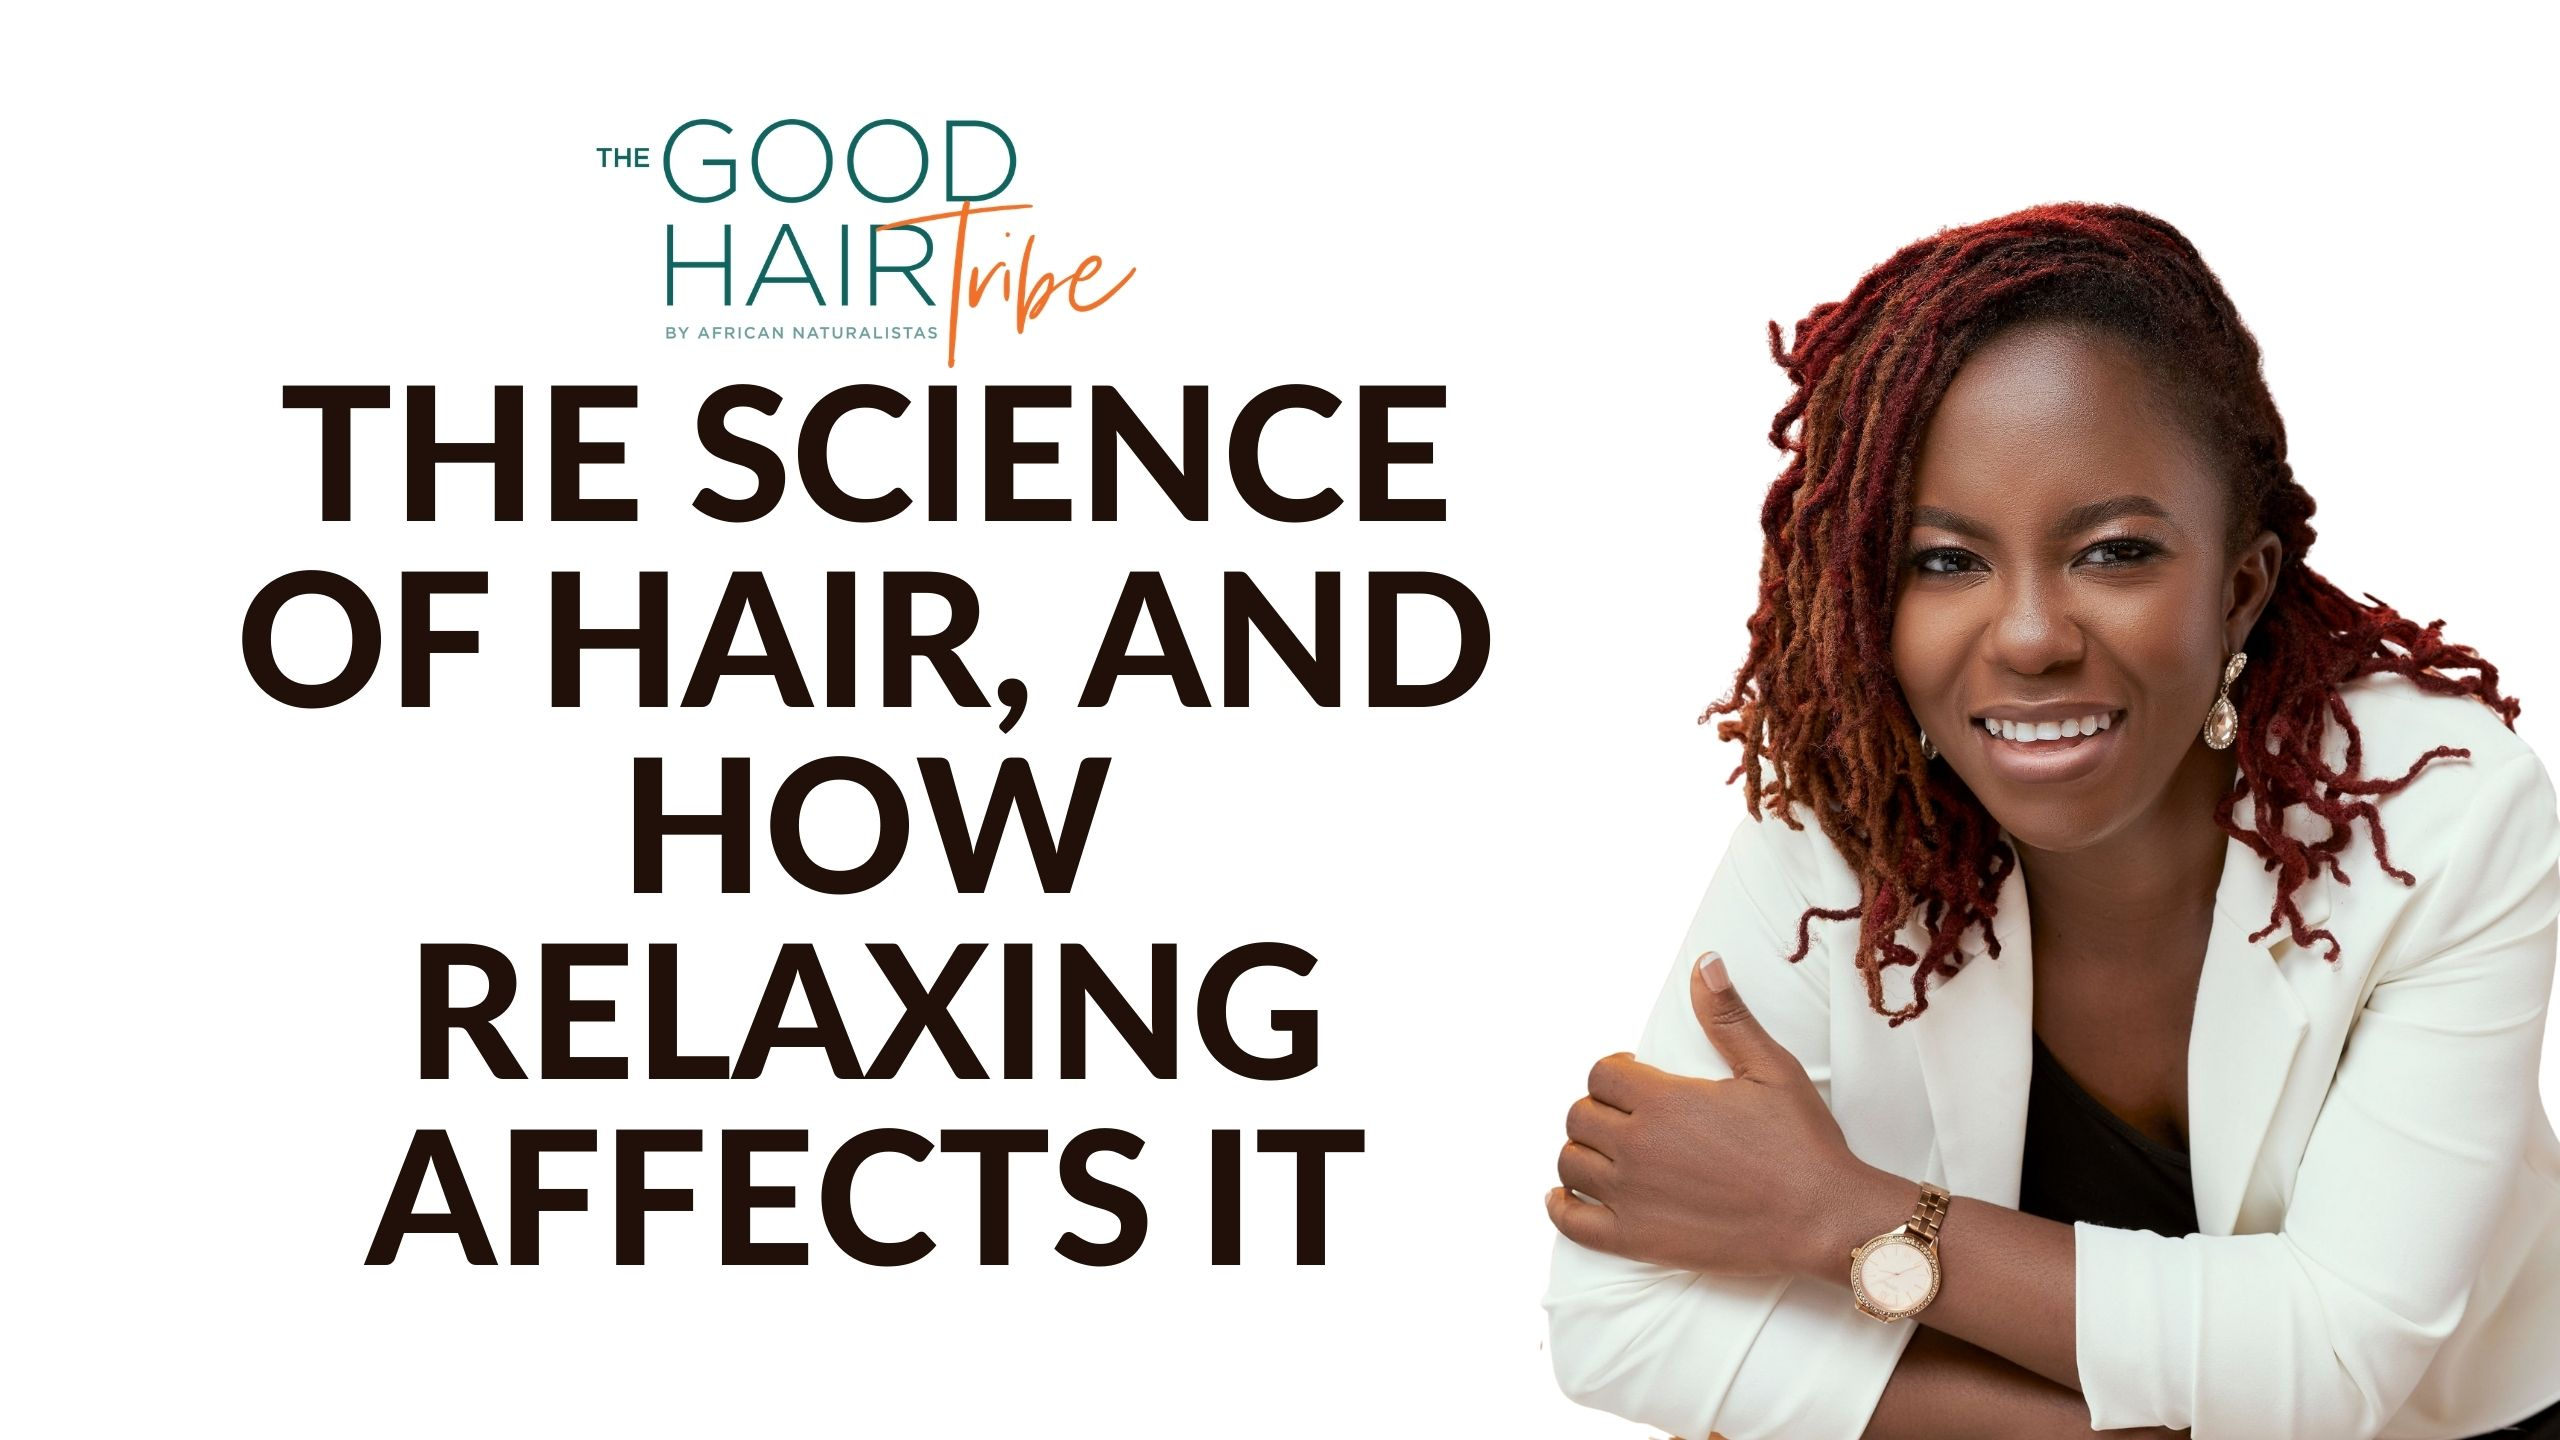 The Science of Hair and Relaxing